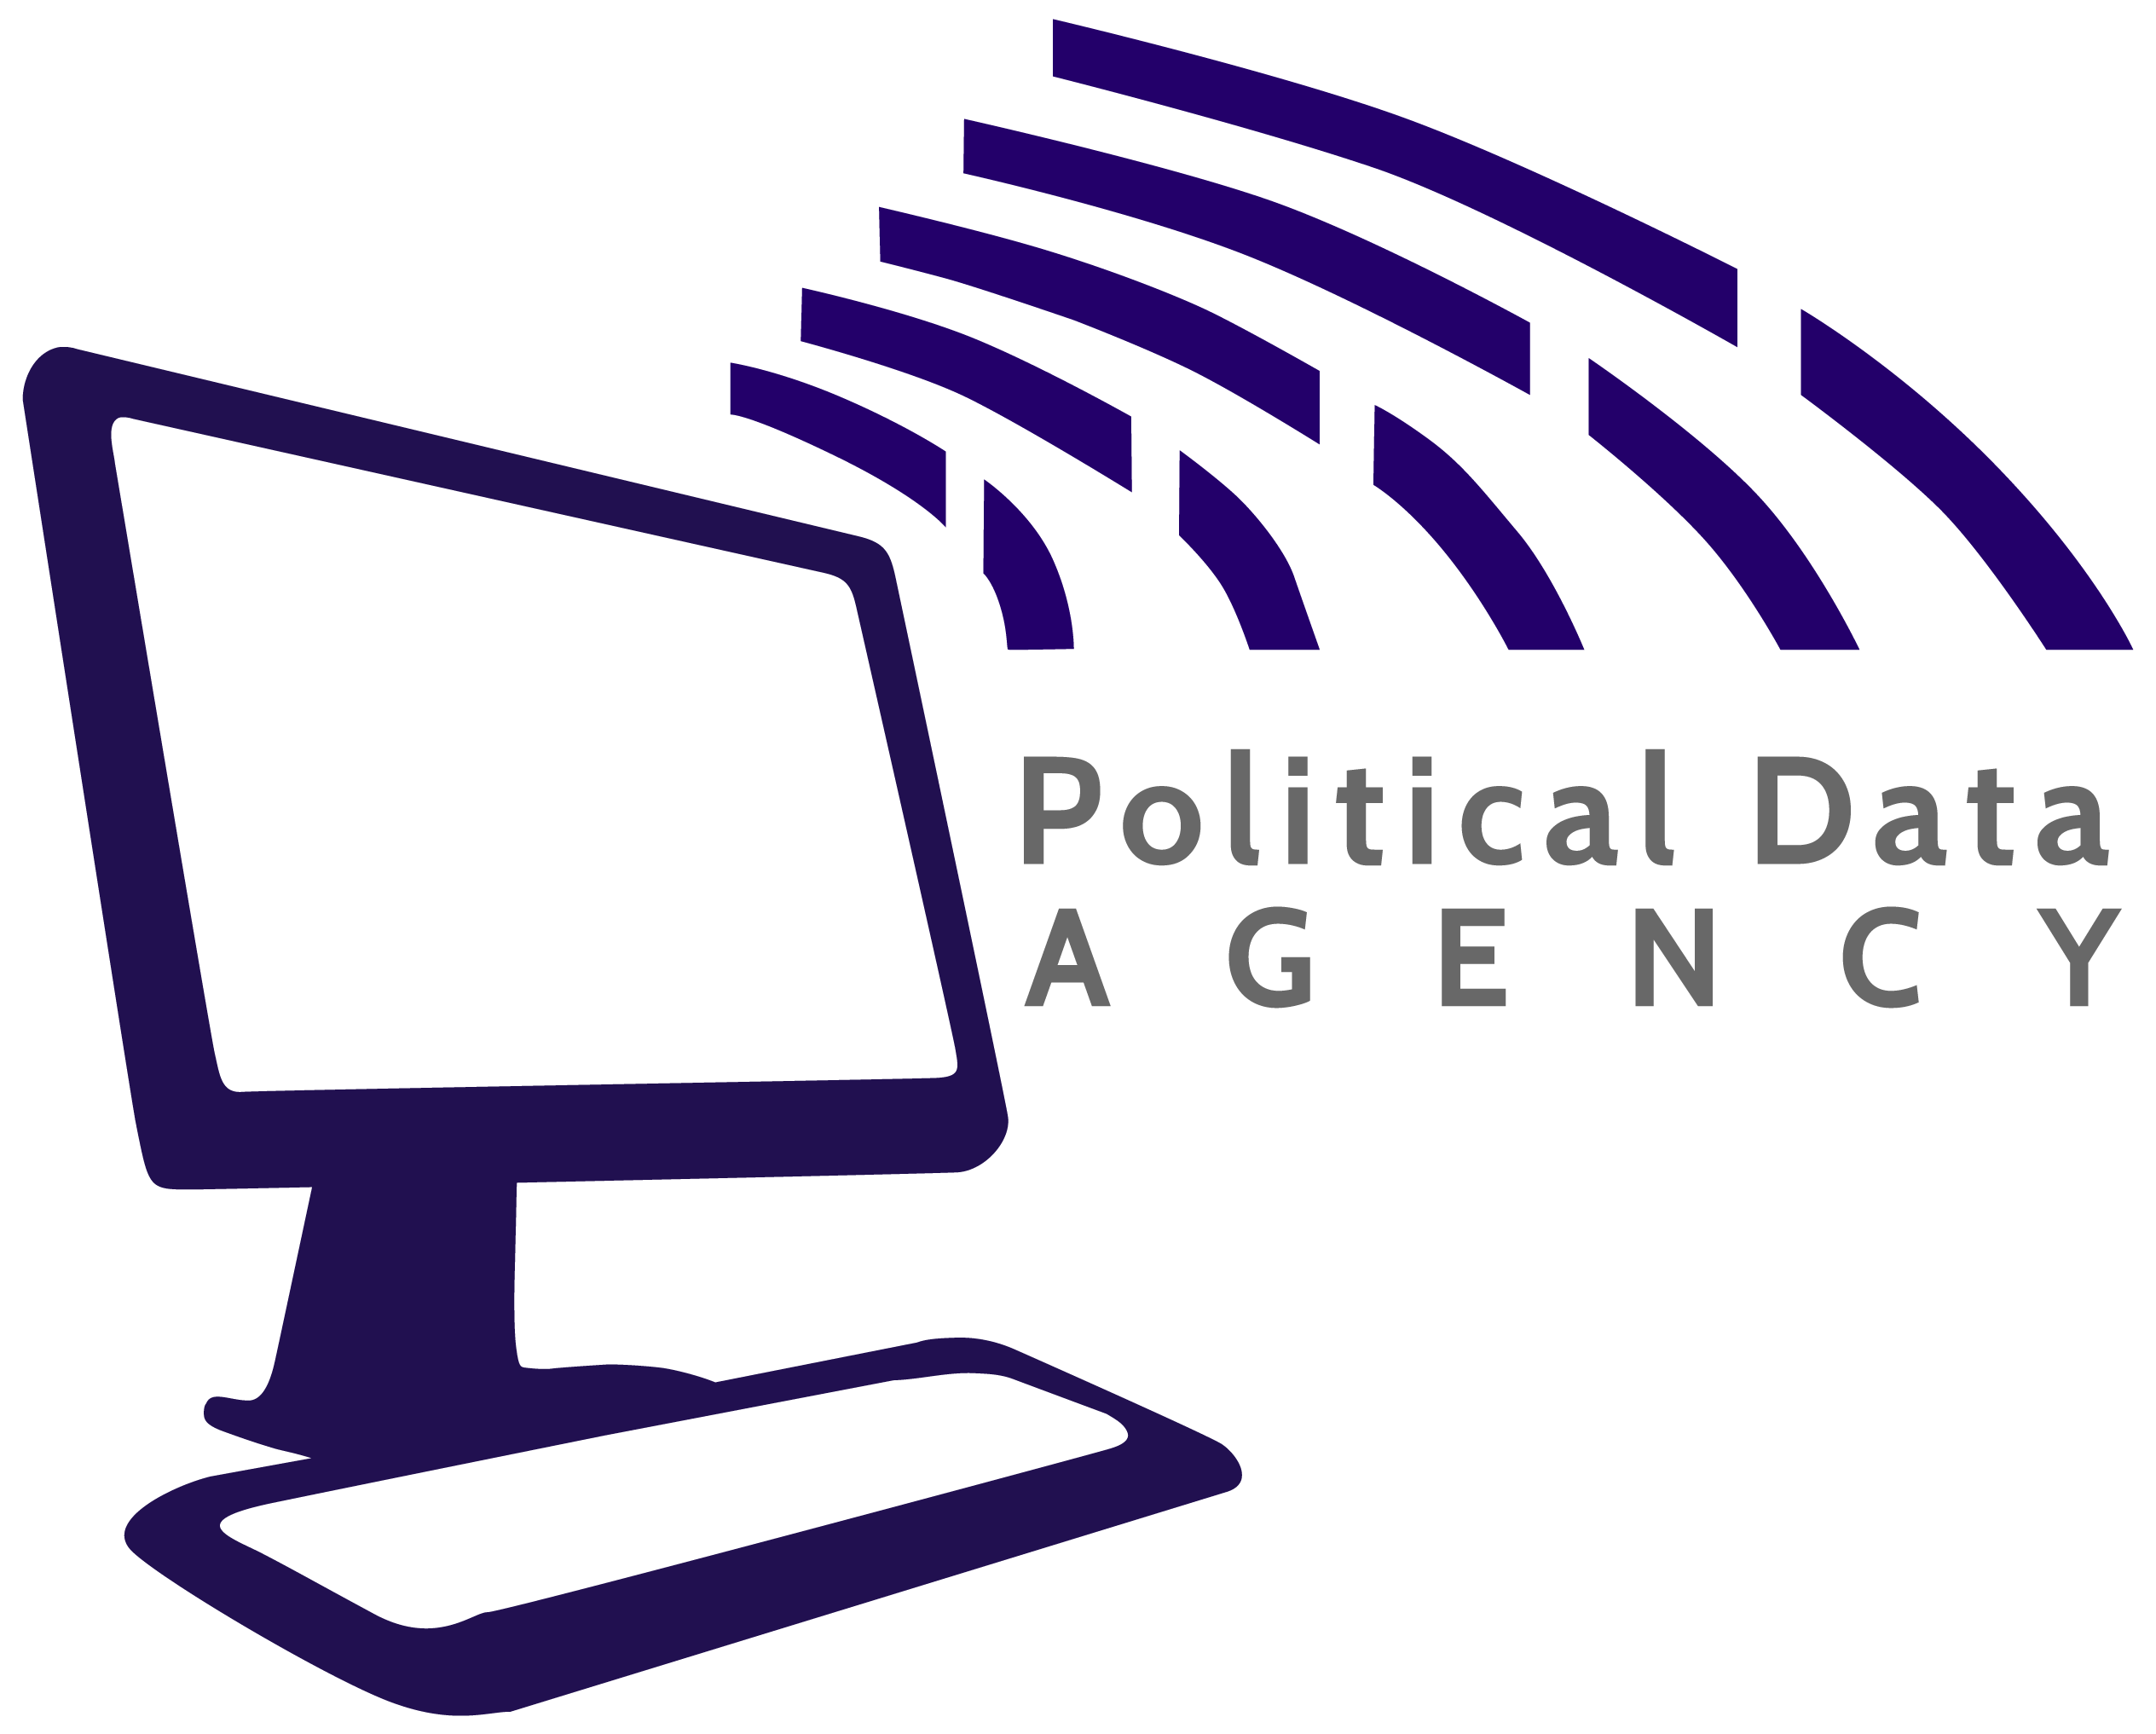 POLITICAL DATA AGENCY